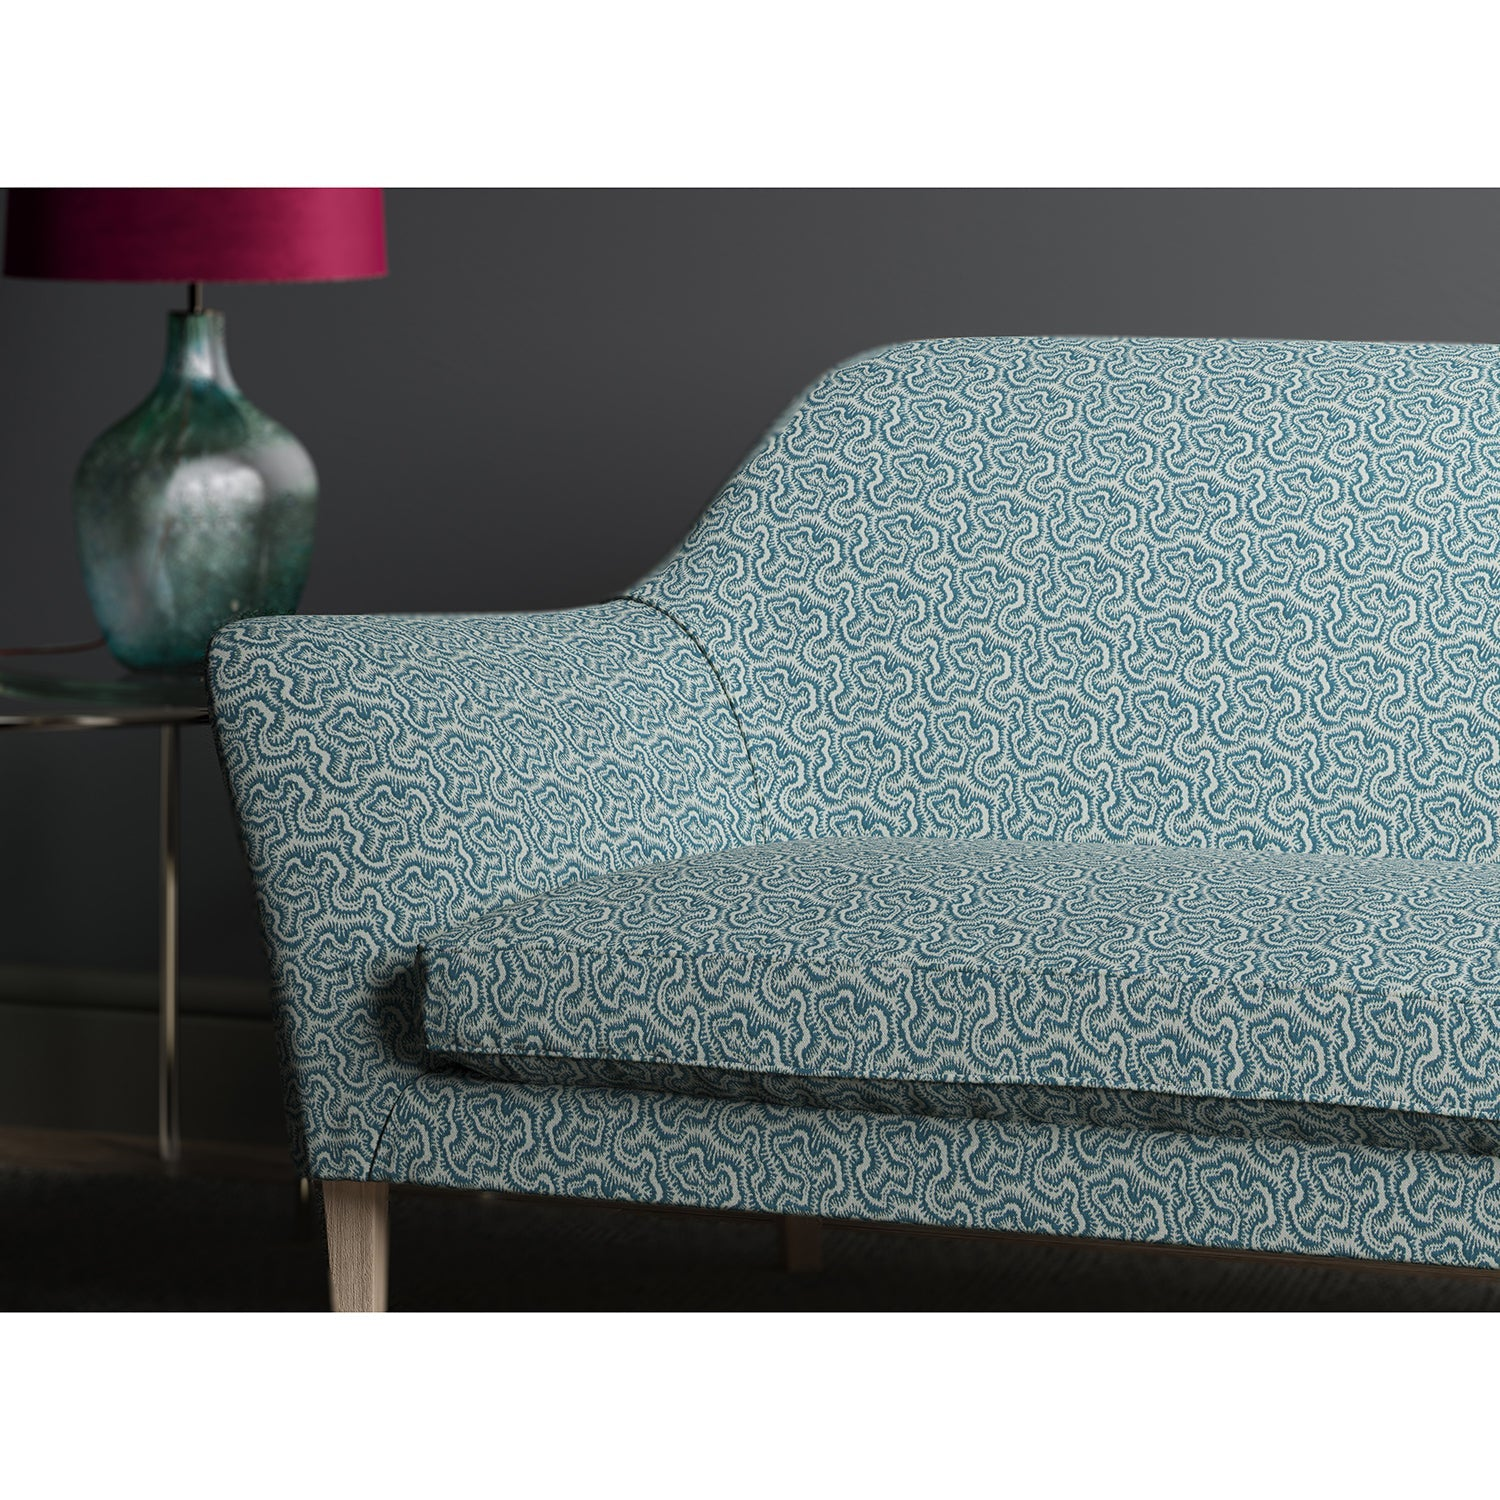 Sofa in design name Polka, colourway Cobalt from Tango Weaves.